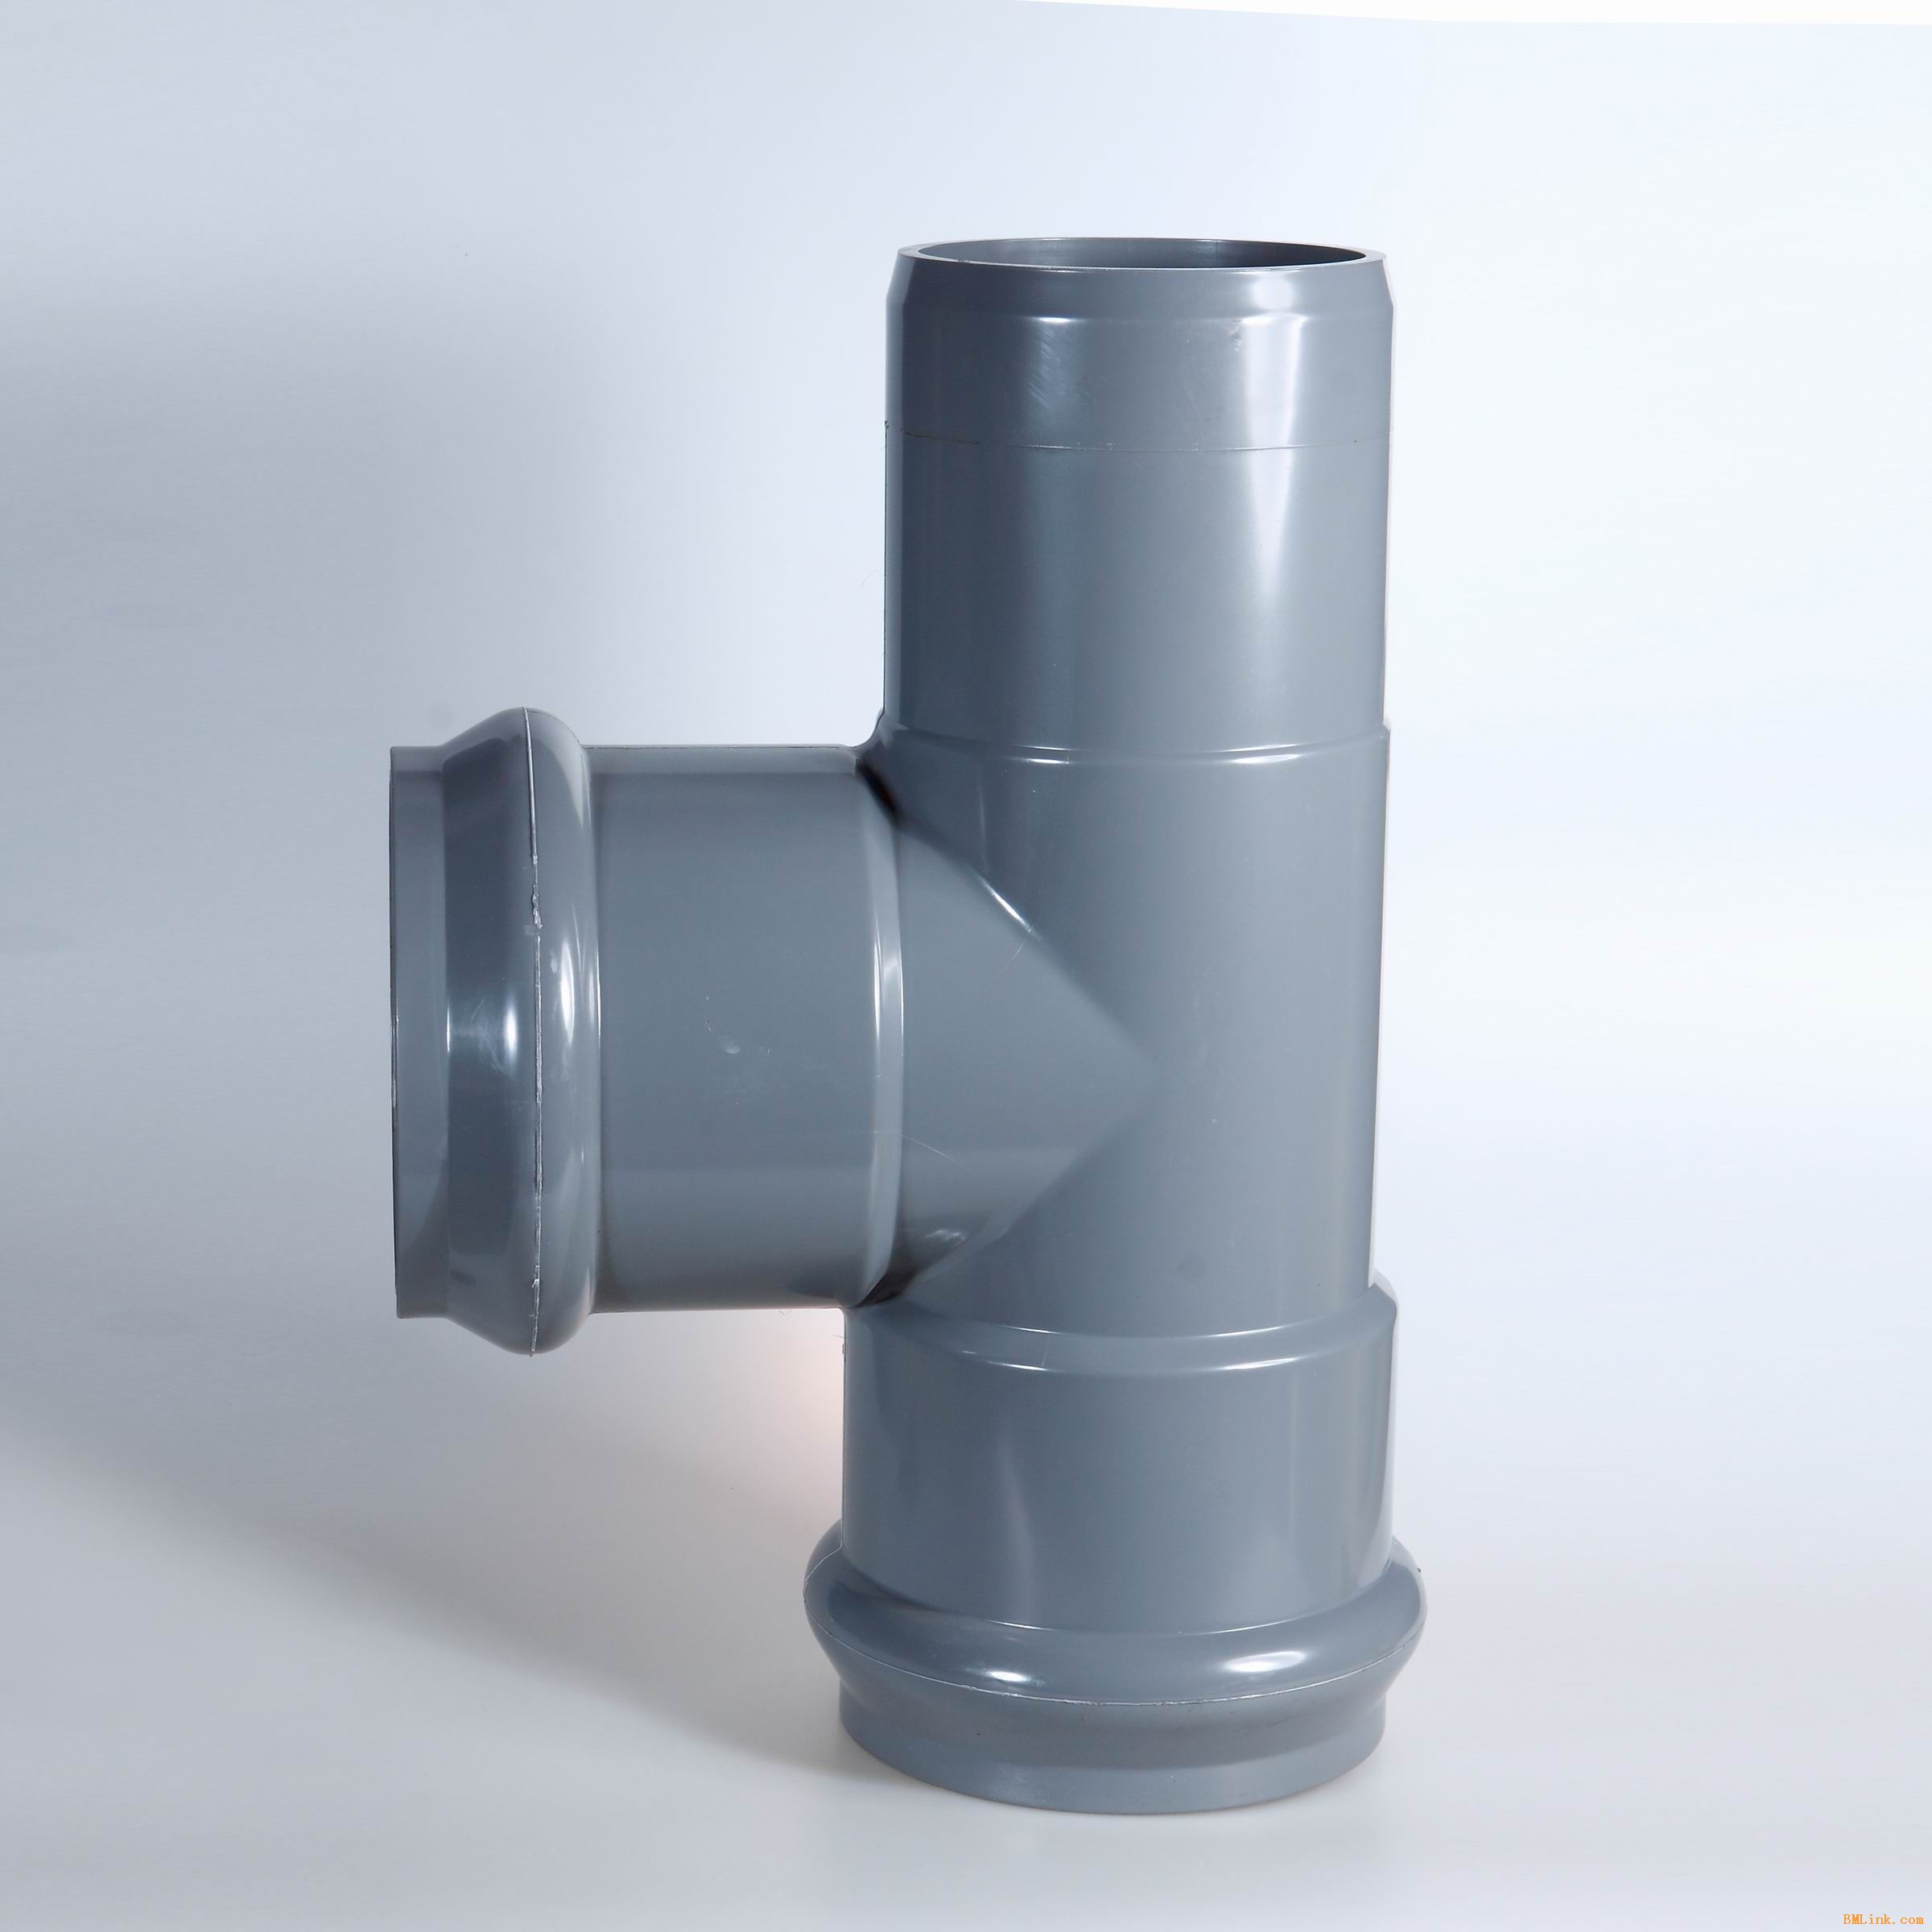 Pvc u pipe fittings with rubber ring joint